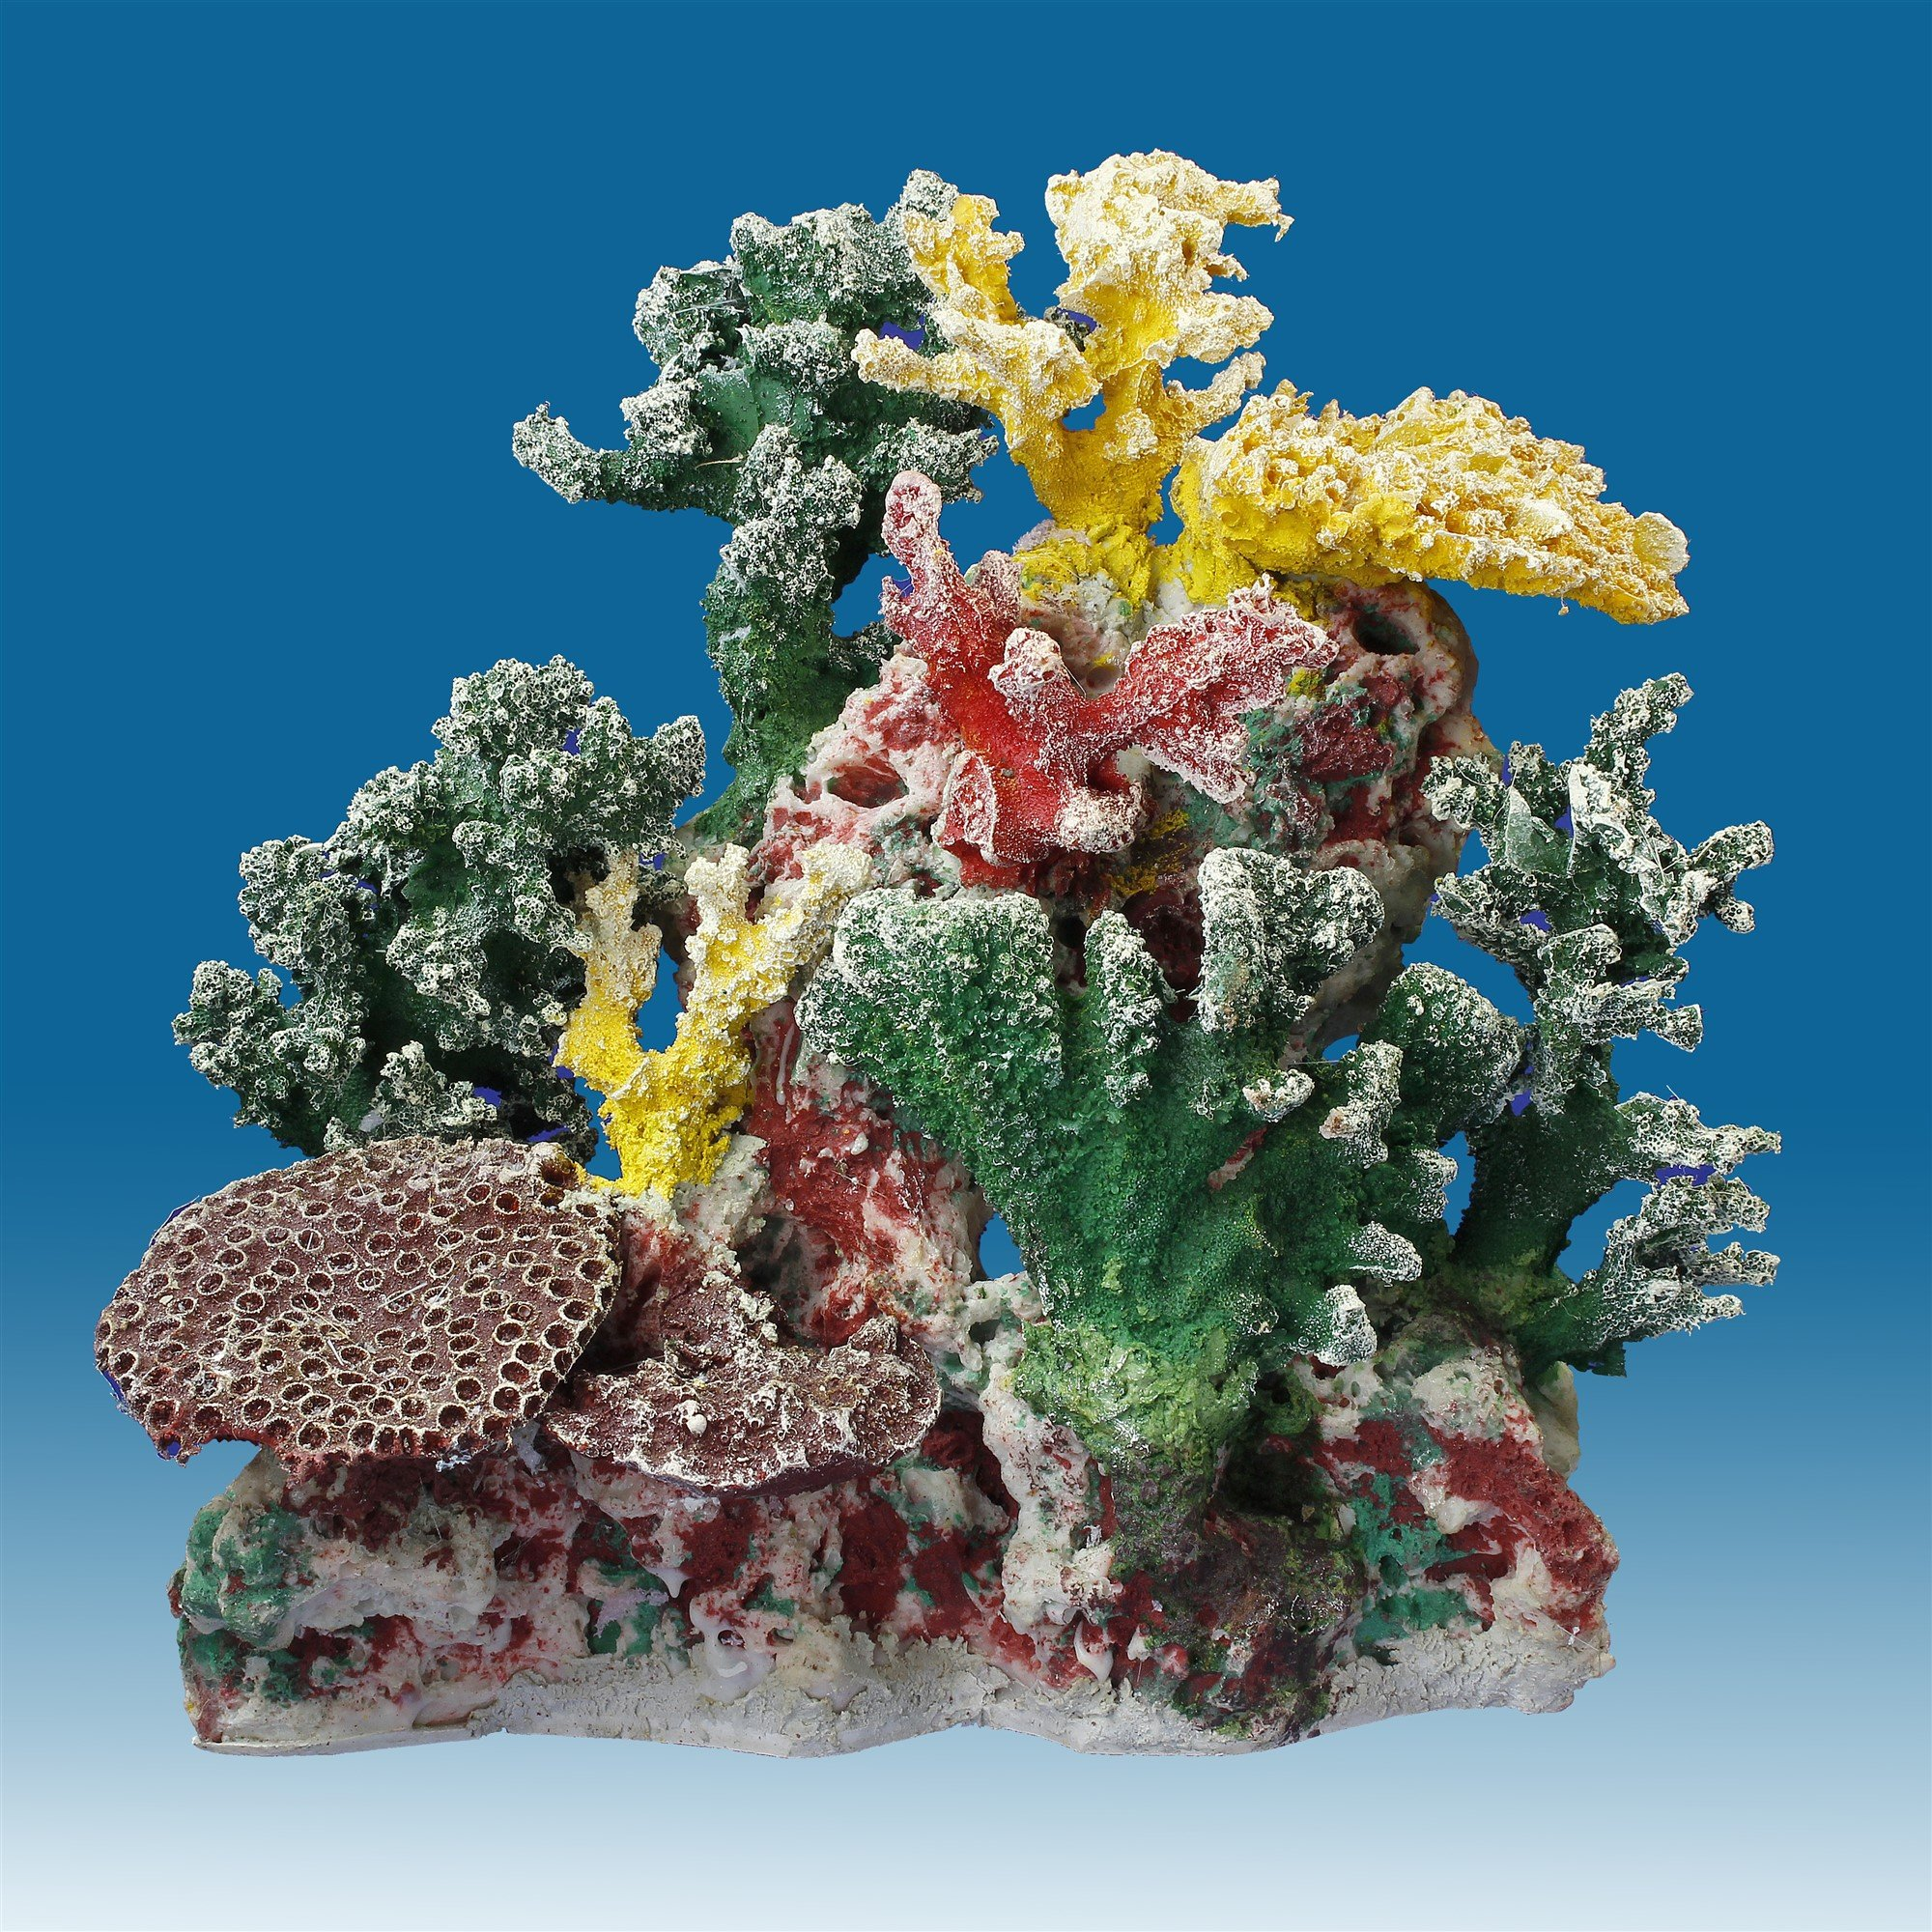 Instant Reef DM057 Artificial Coral Inserts Decor, Fake Coral Reef Decorations for Colorful Freshwater Fish Aquariums, Marine and Saltwater Fish Tanks by Instant Reef